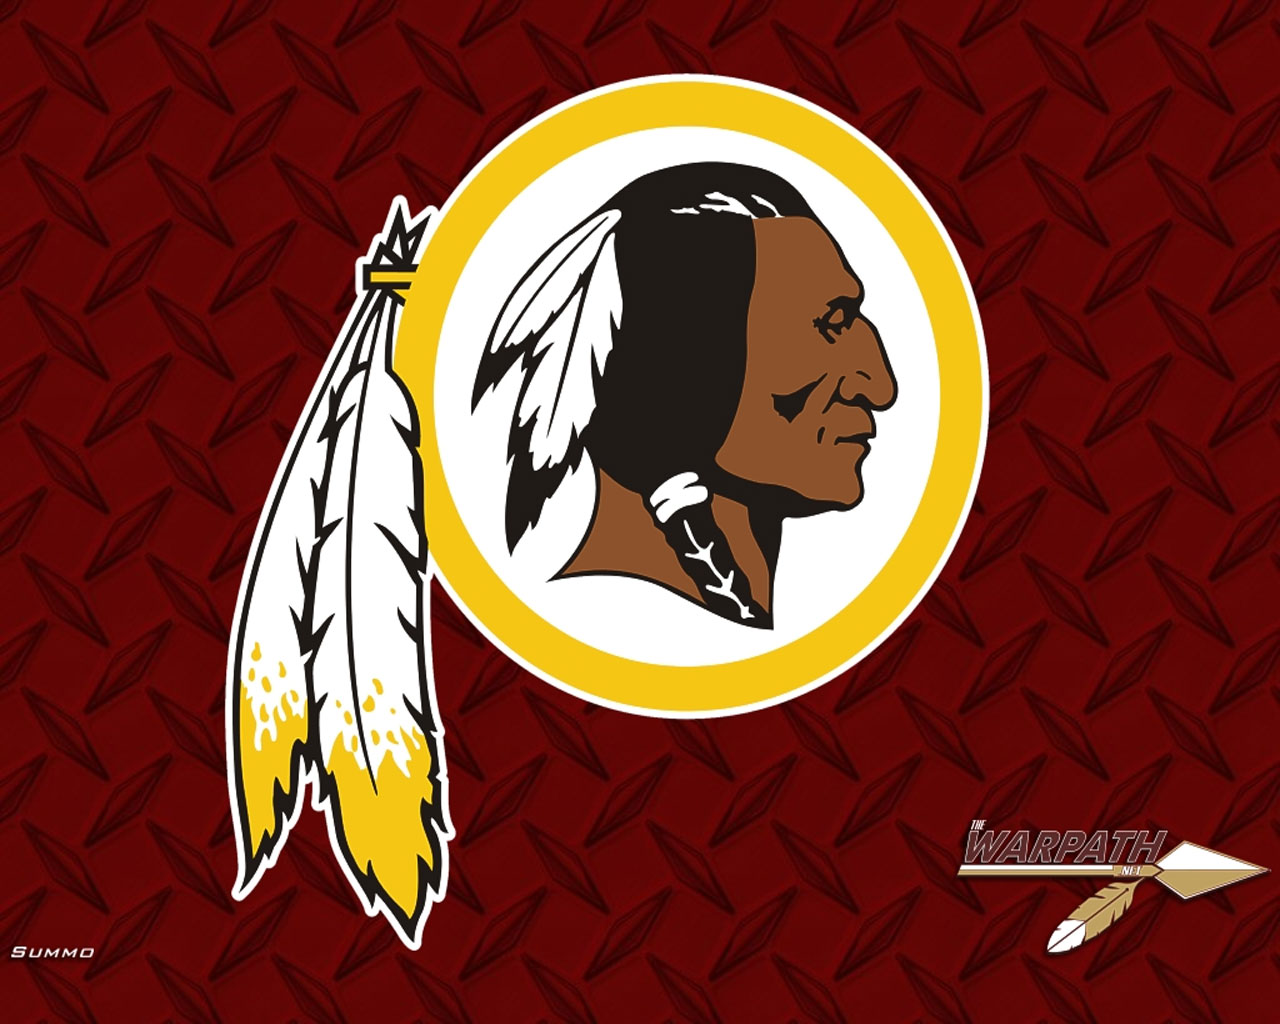 Washington Redskins wallpaper Fondos de pantalla de Washington 1280x1024